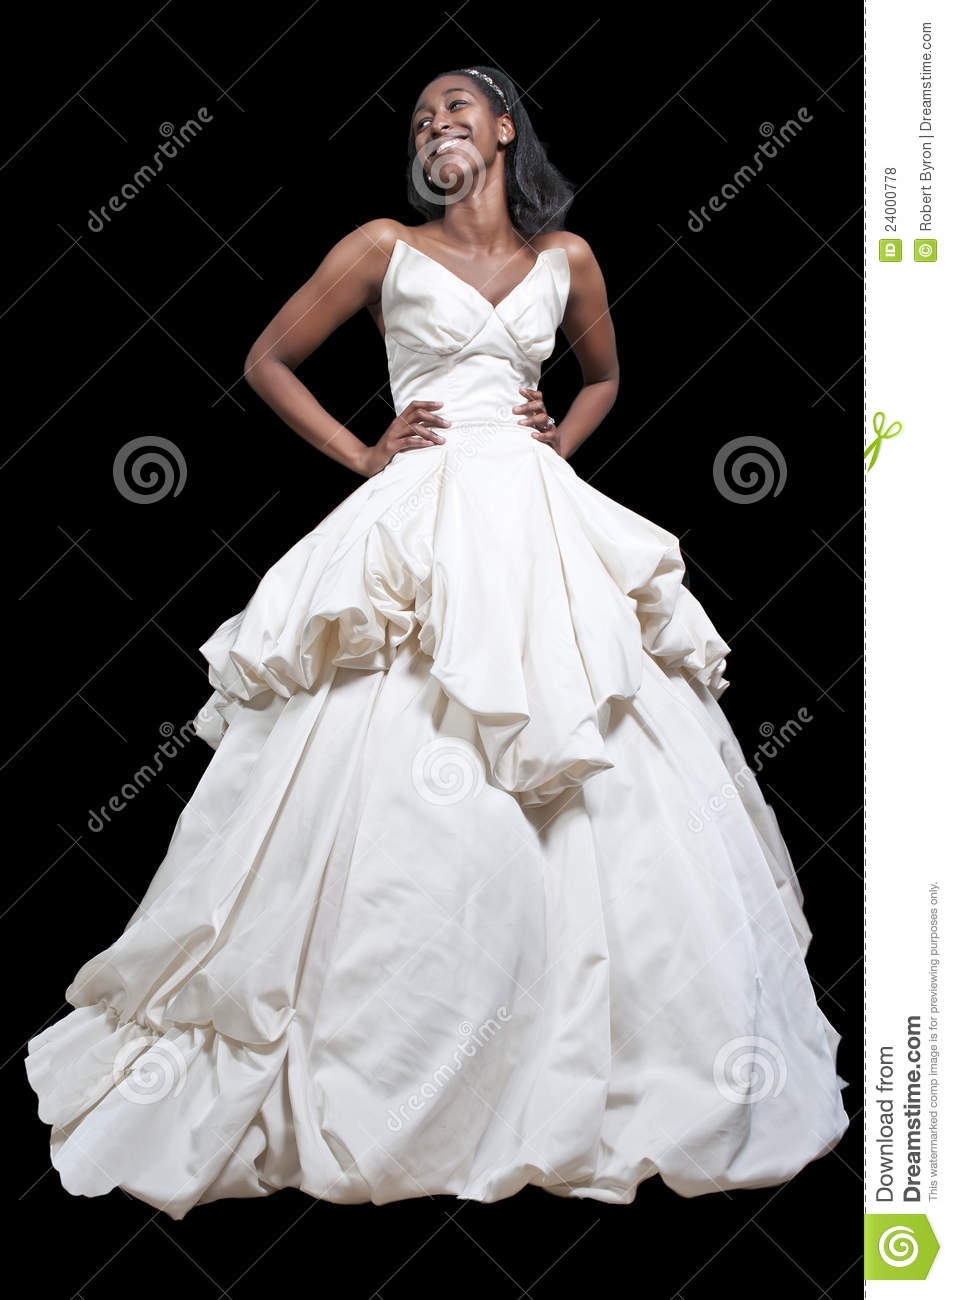 Black Woman In Wedding Dress Stock Photo - Image of marriage ...